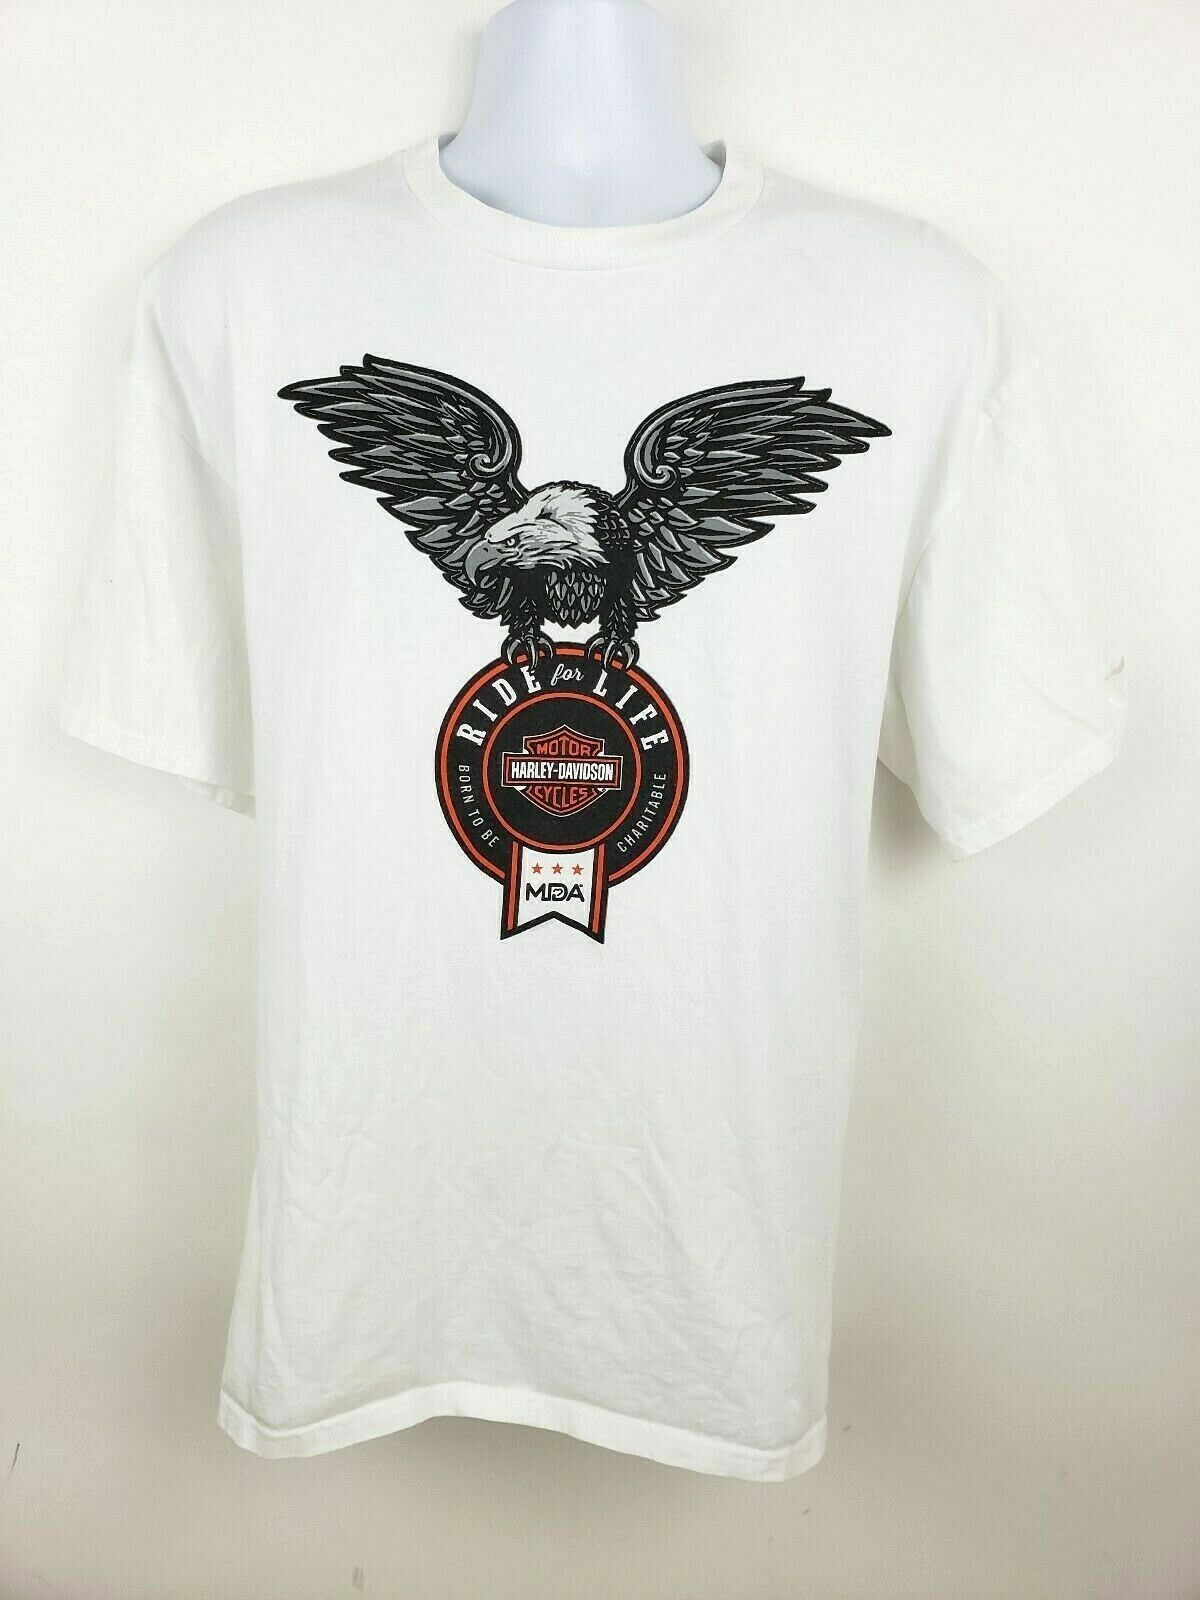 Harley Davidson Ride For Life Charity T-shirt White Size XL Eagle